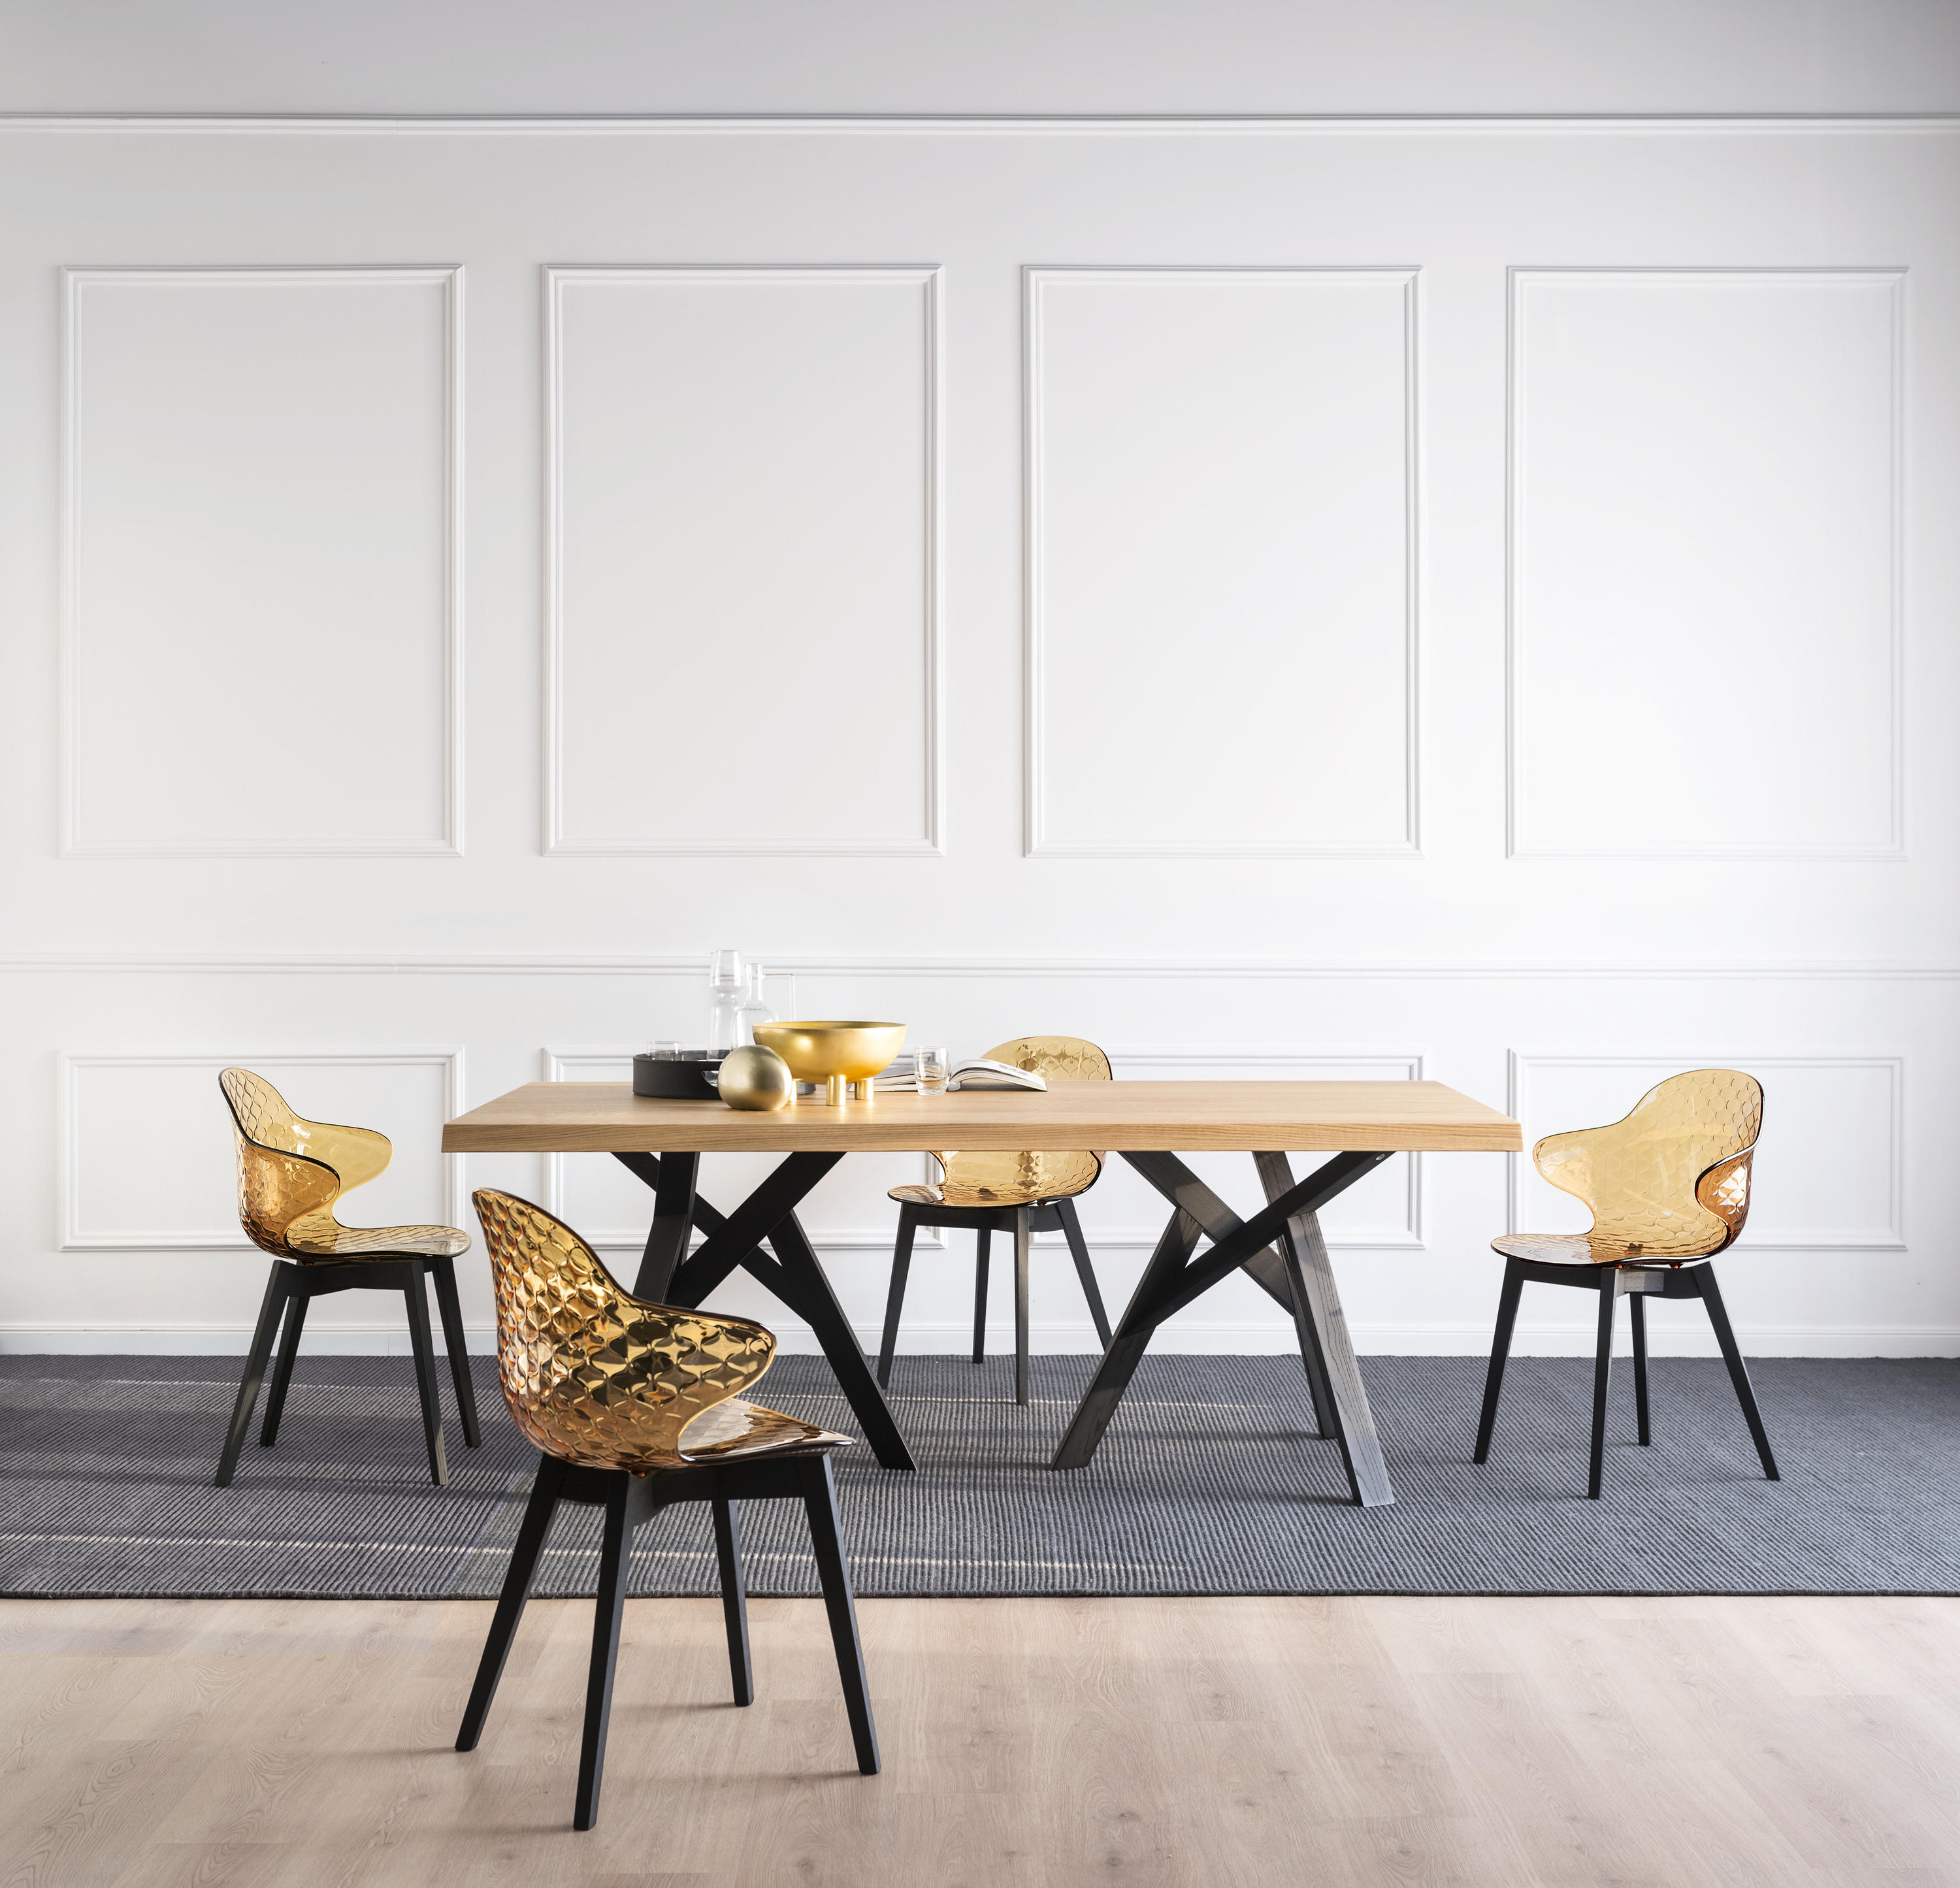 Saint tropez chairs from calligaris architonic for Calligaris saint tropez